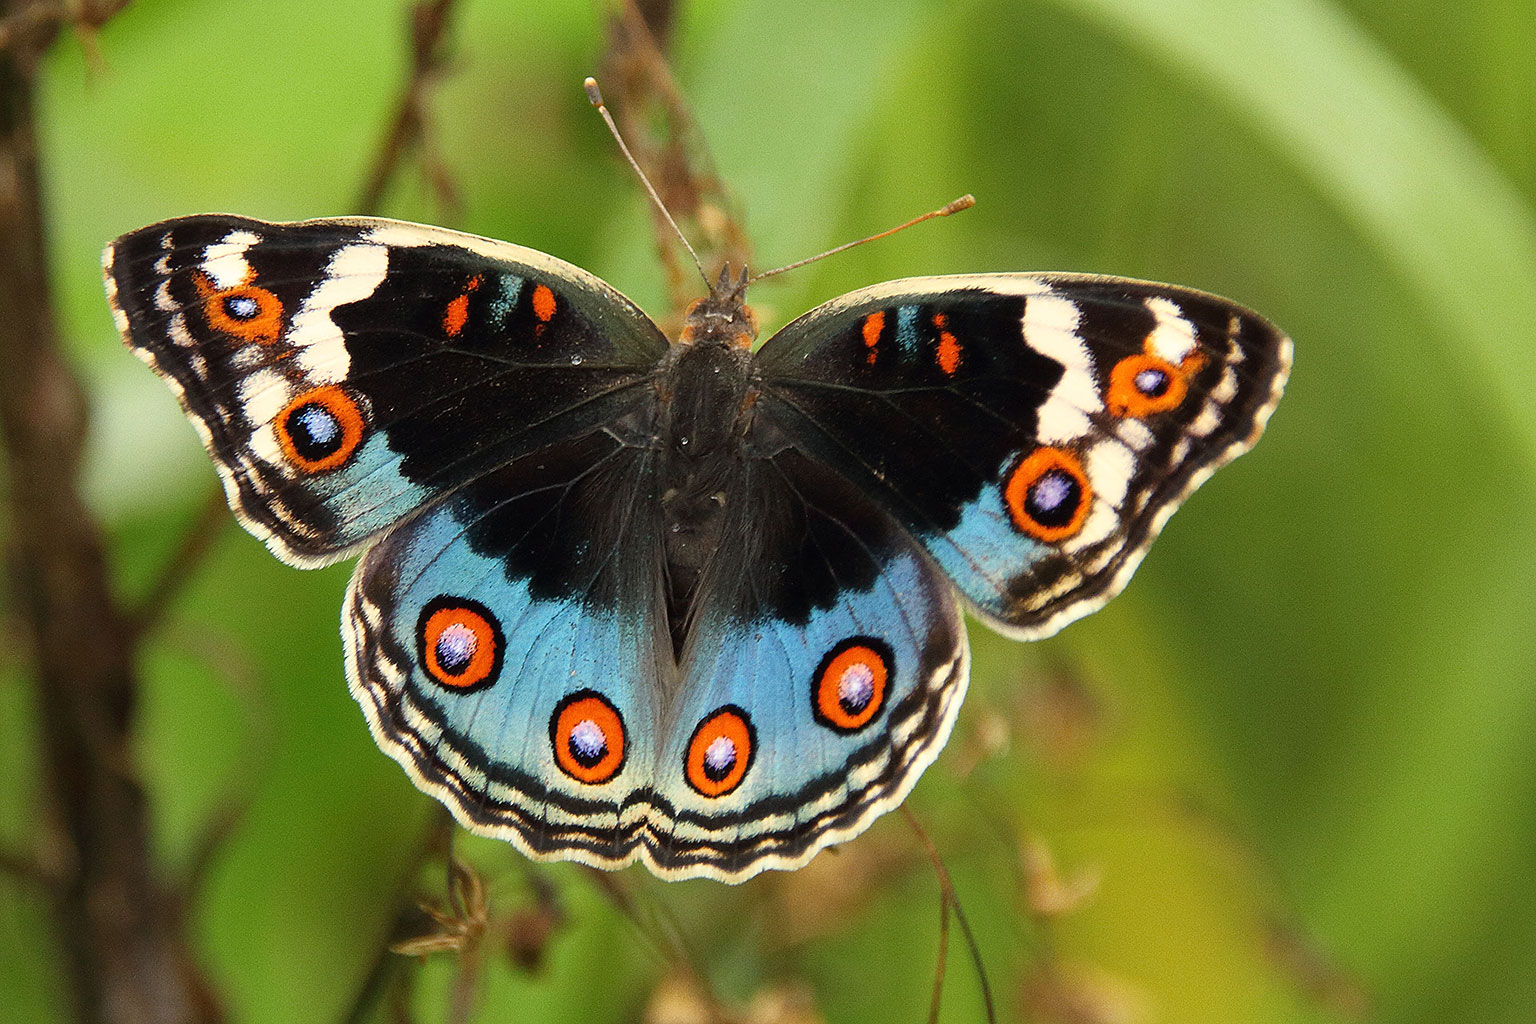 There-are-many-butterfly-species-in-the-Okavango-Delta-Nature-Guide-Training-Botswana